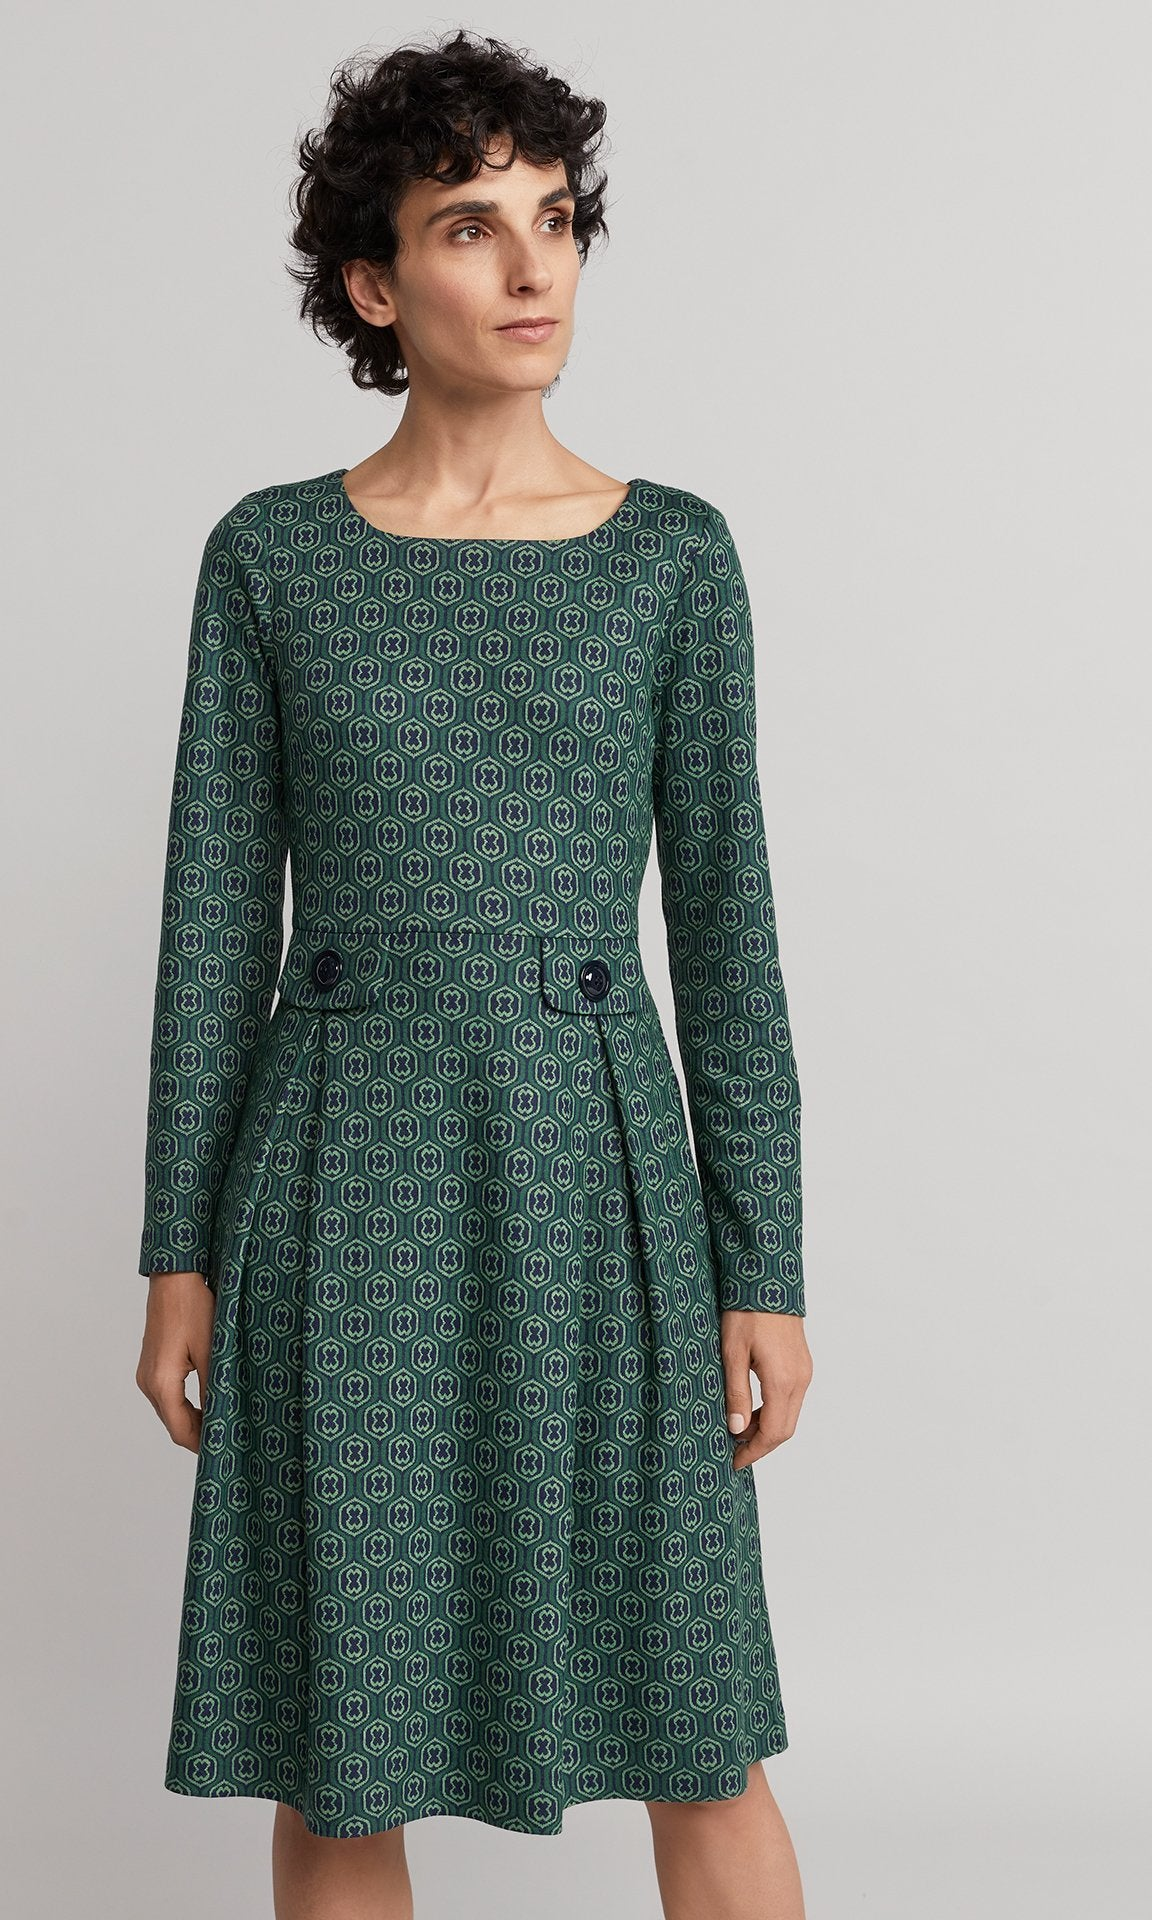 Hemlock Dress - Emerald